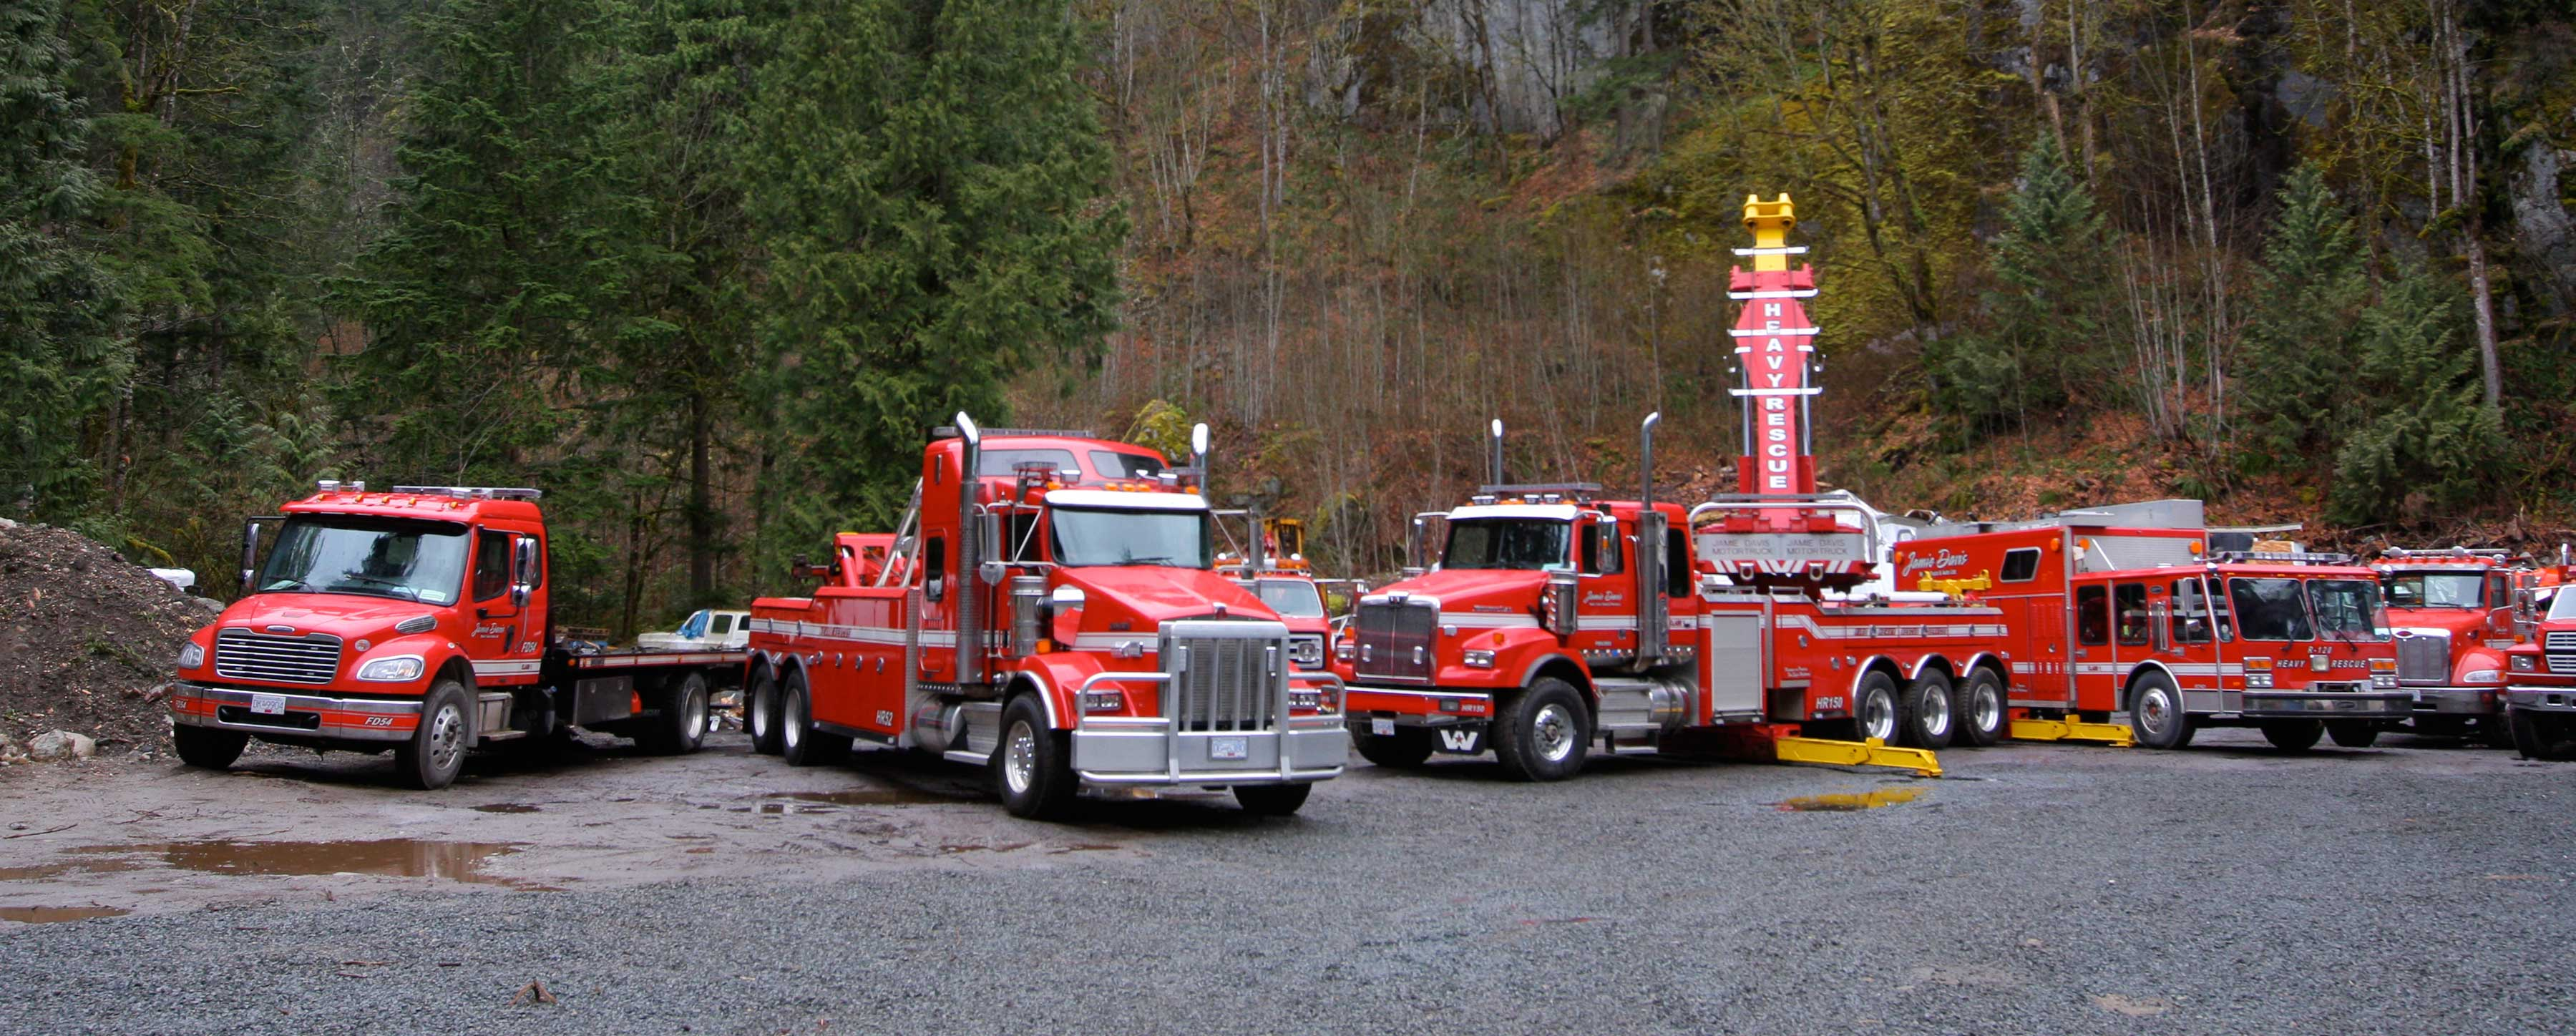 HighwayThruHell_sak2